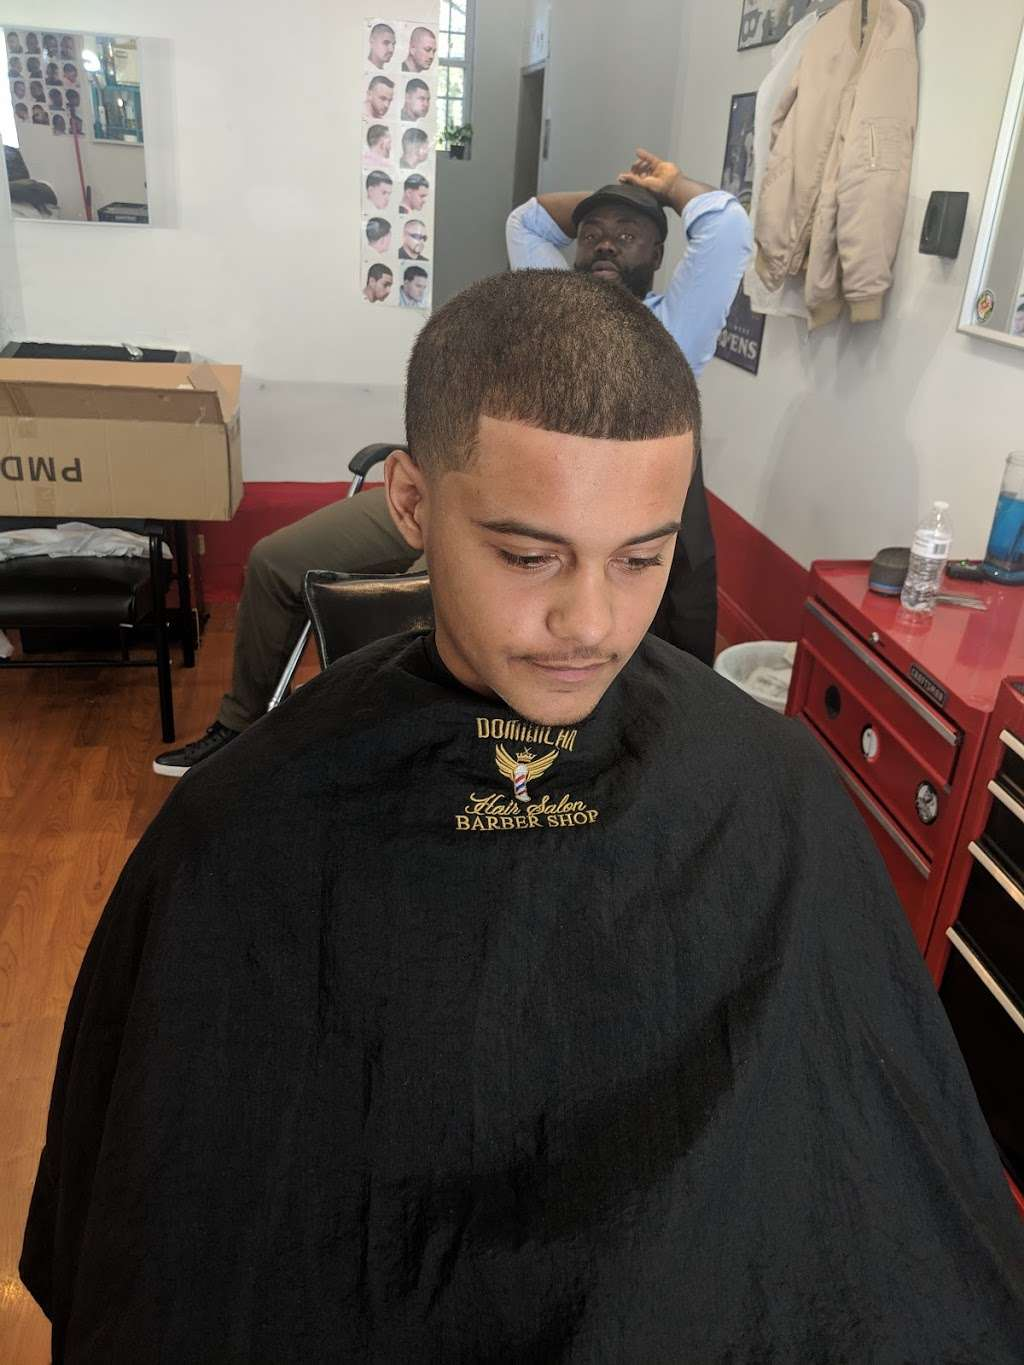 """Dominican Barbershop """"BROTHERHOOD"""" 1 - hair care    Photo 10 of 10   Address: 6416 Frederick Rd, Catonsville, MD 21228, United States   Phone: (443) 636-5063"""